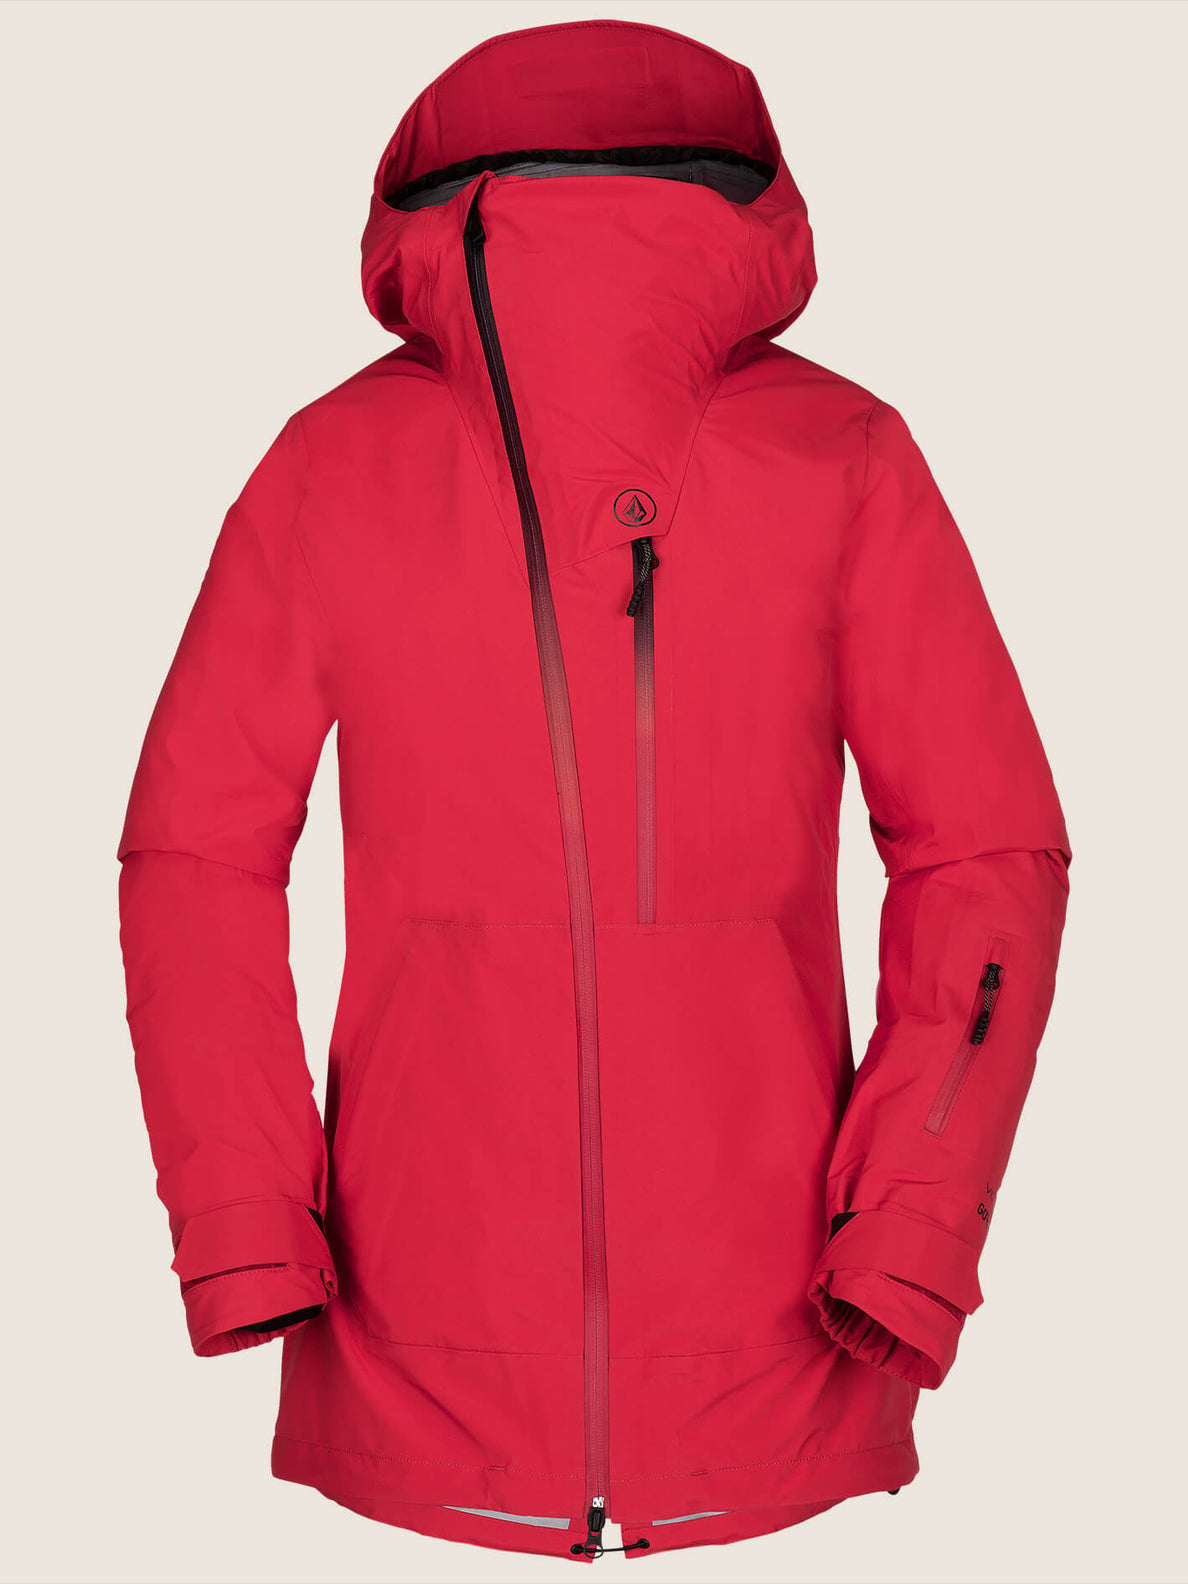 Nya Tds® Gore-tex Jacket In Crimson, Front View